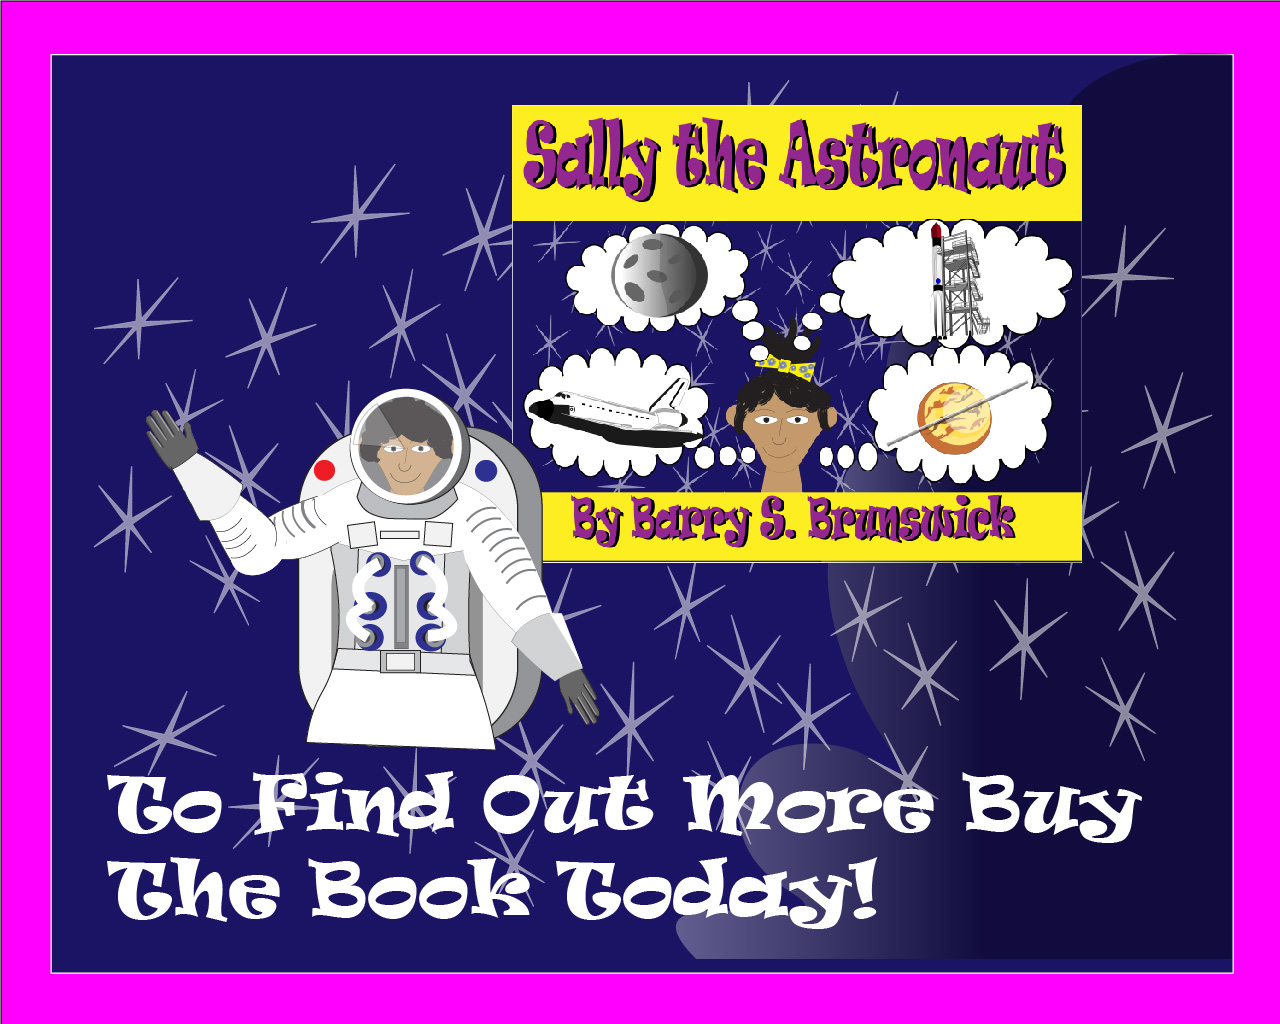 Barry S. Brunswick_Look Inside Sally the Astronaut.5